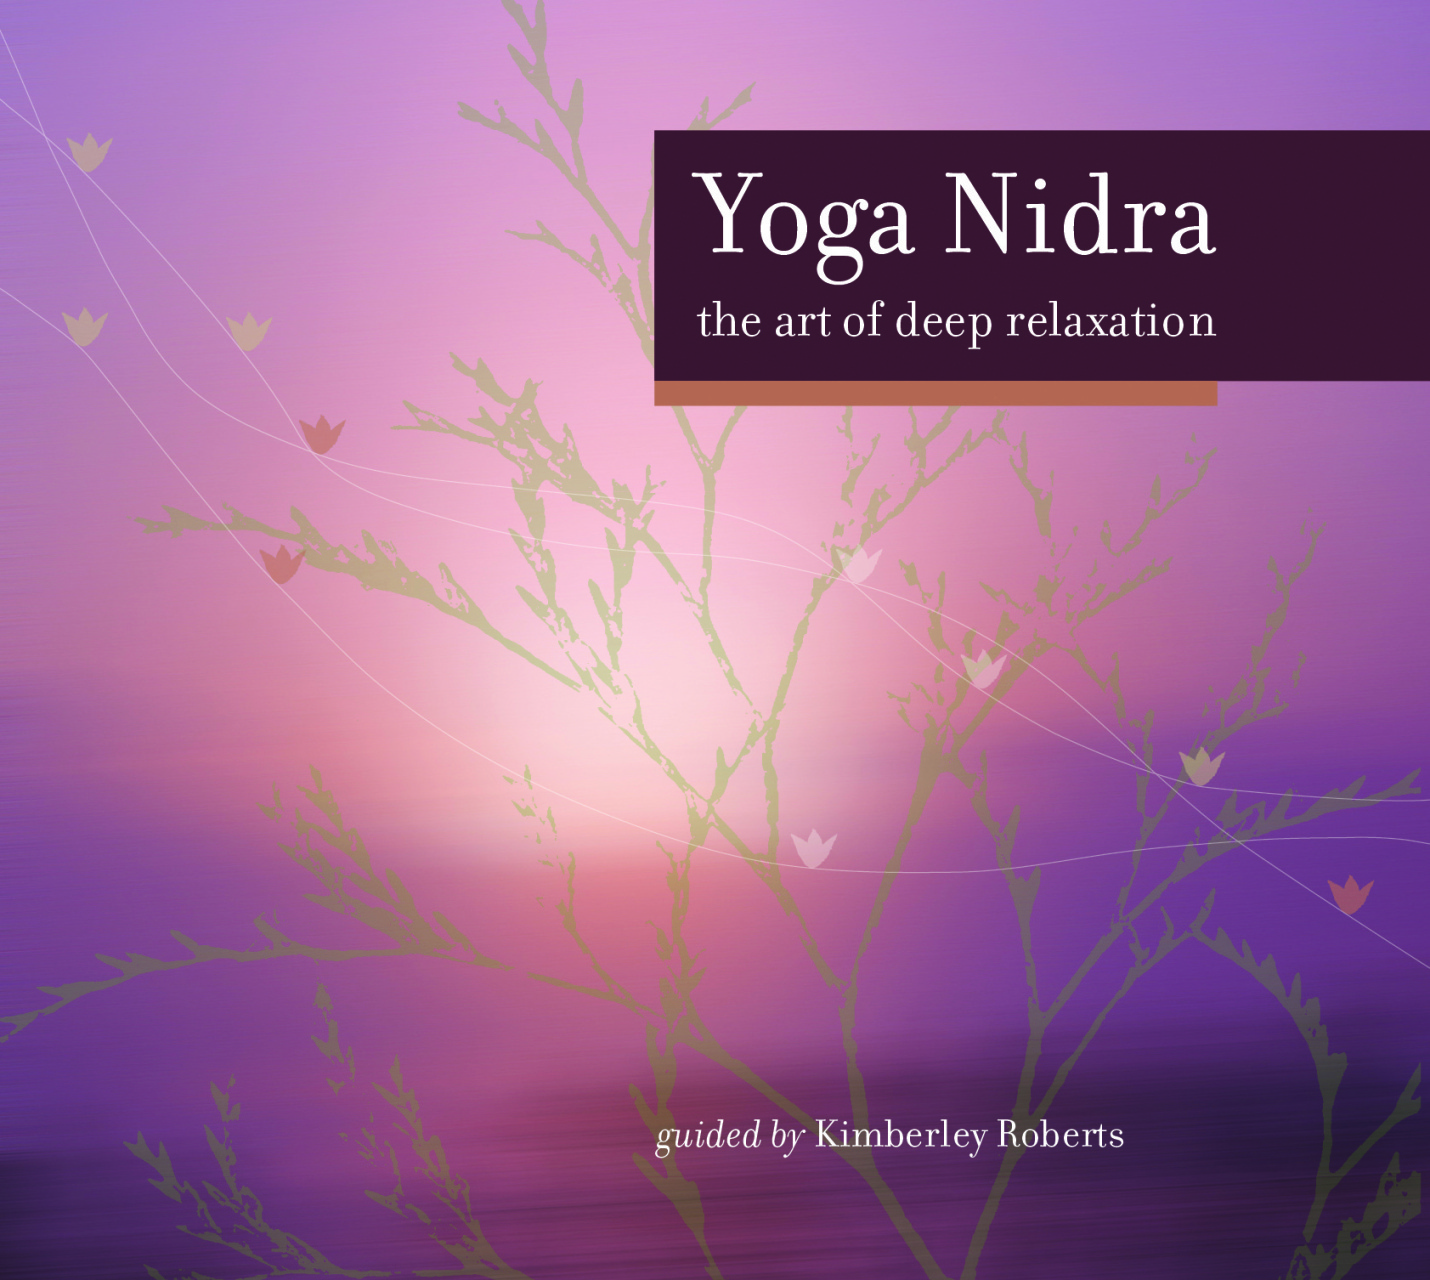 Yoga Nidra CDs - Your Peace Within Yoga & Wellbeing